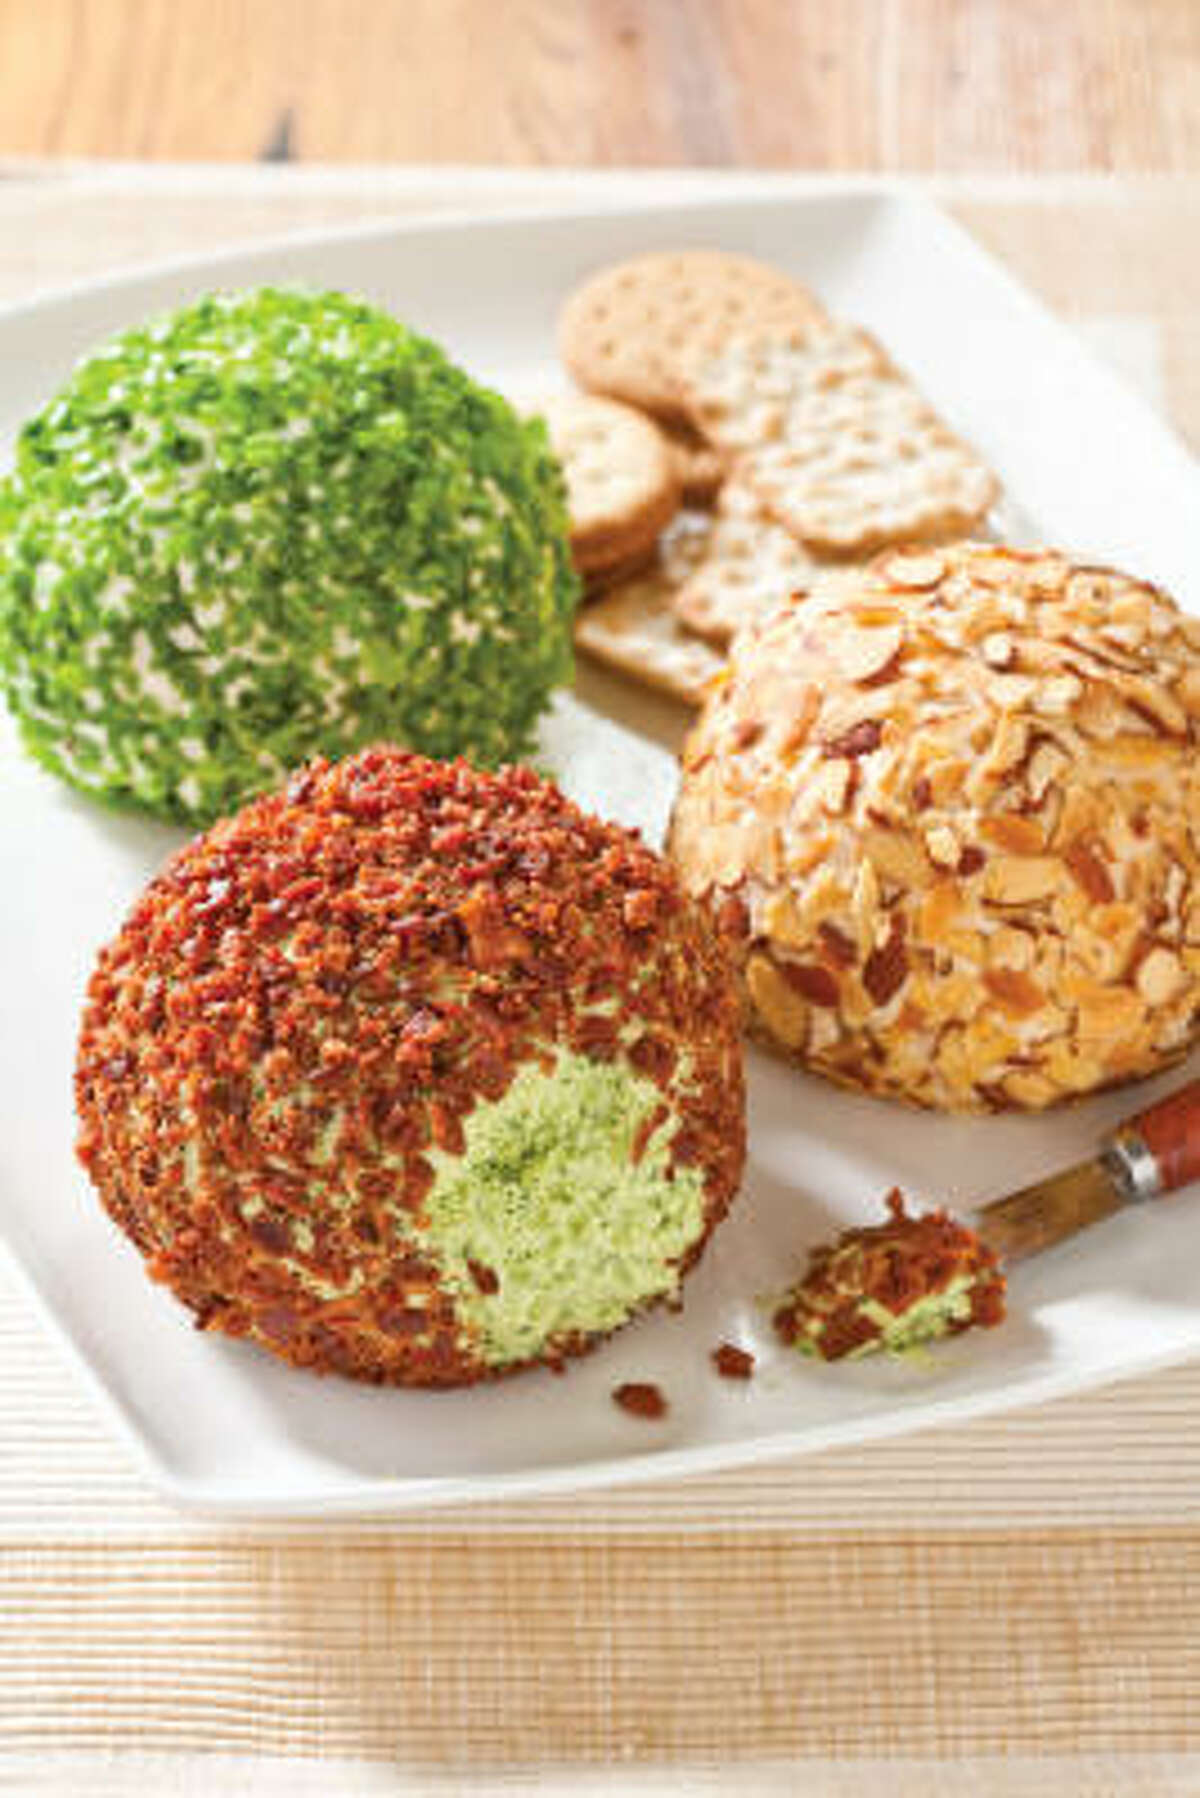 With a few simple substitutions, a Classic Cheddar Cheese Ball recipe can yield infinite variations.